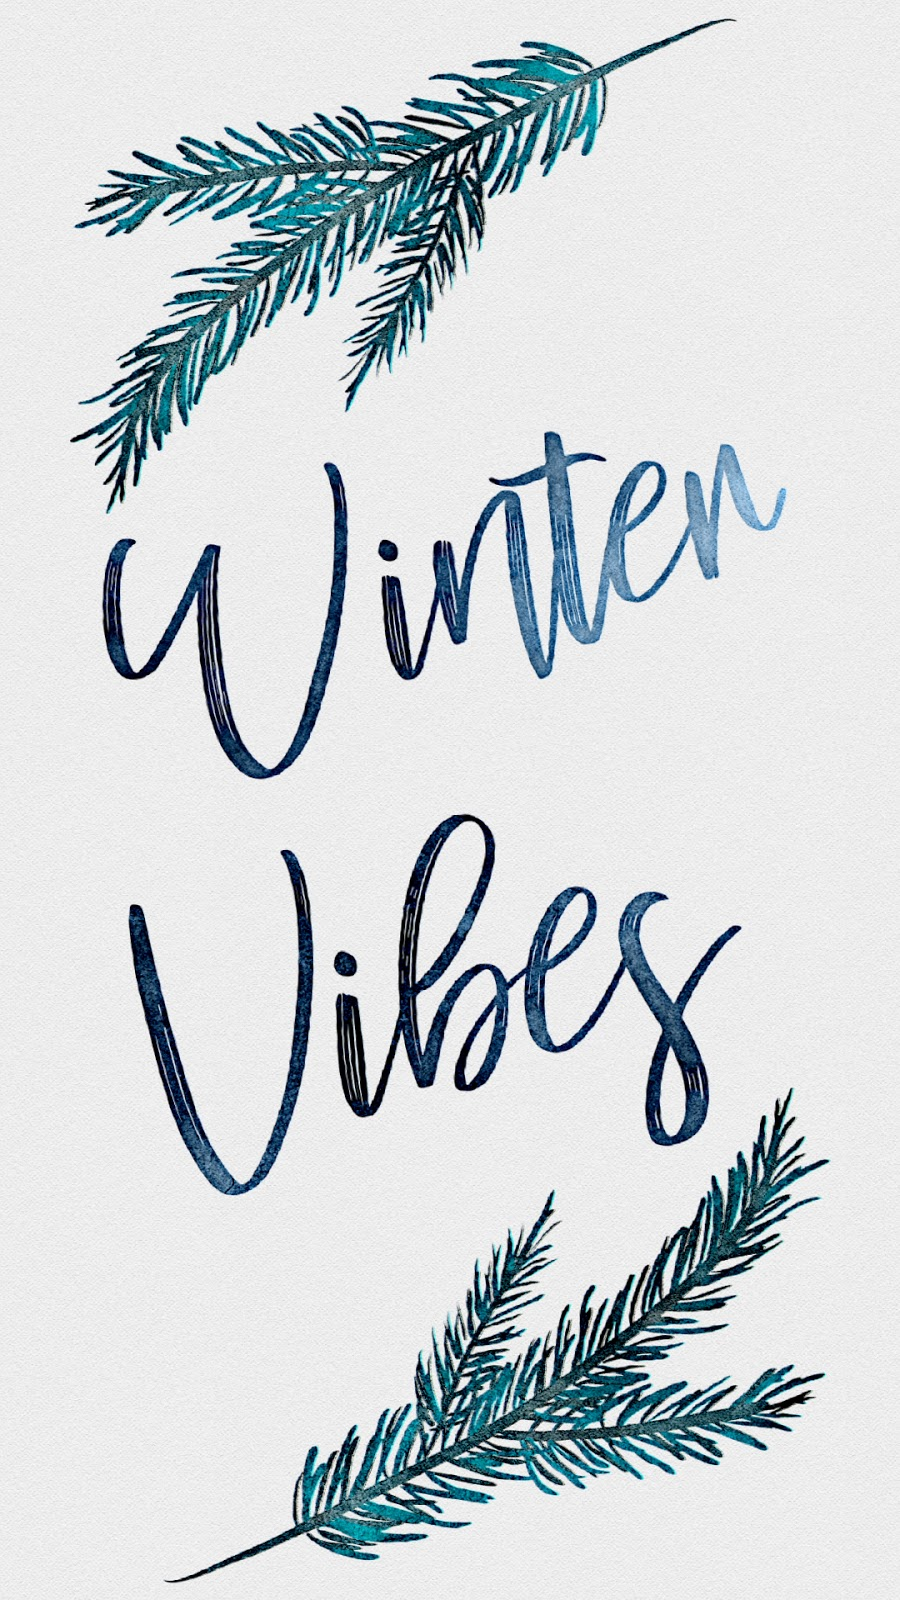 Free Winter Vibes Typography Lettering with Pine Branches Chic Smartphone Wallpaper Background